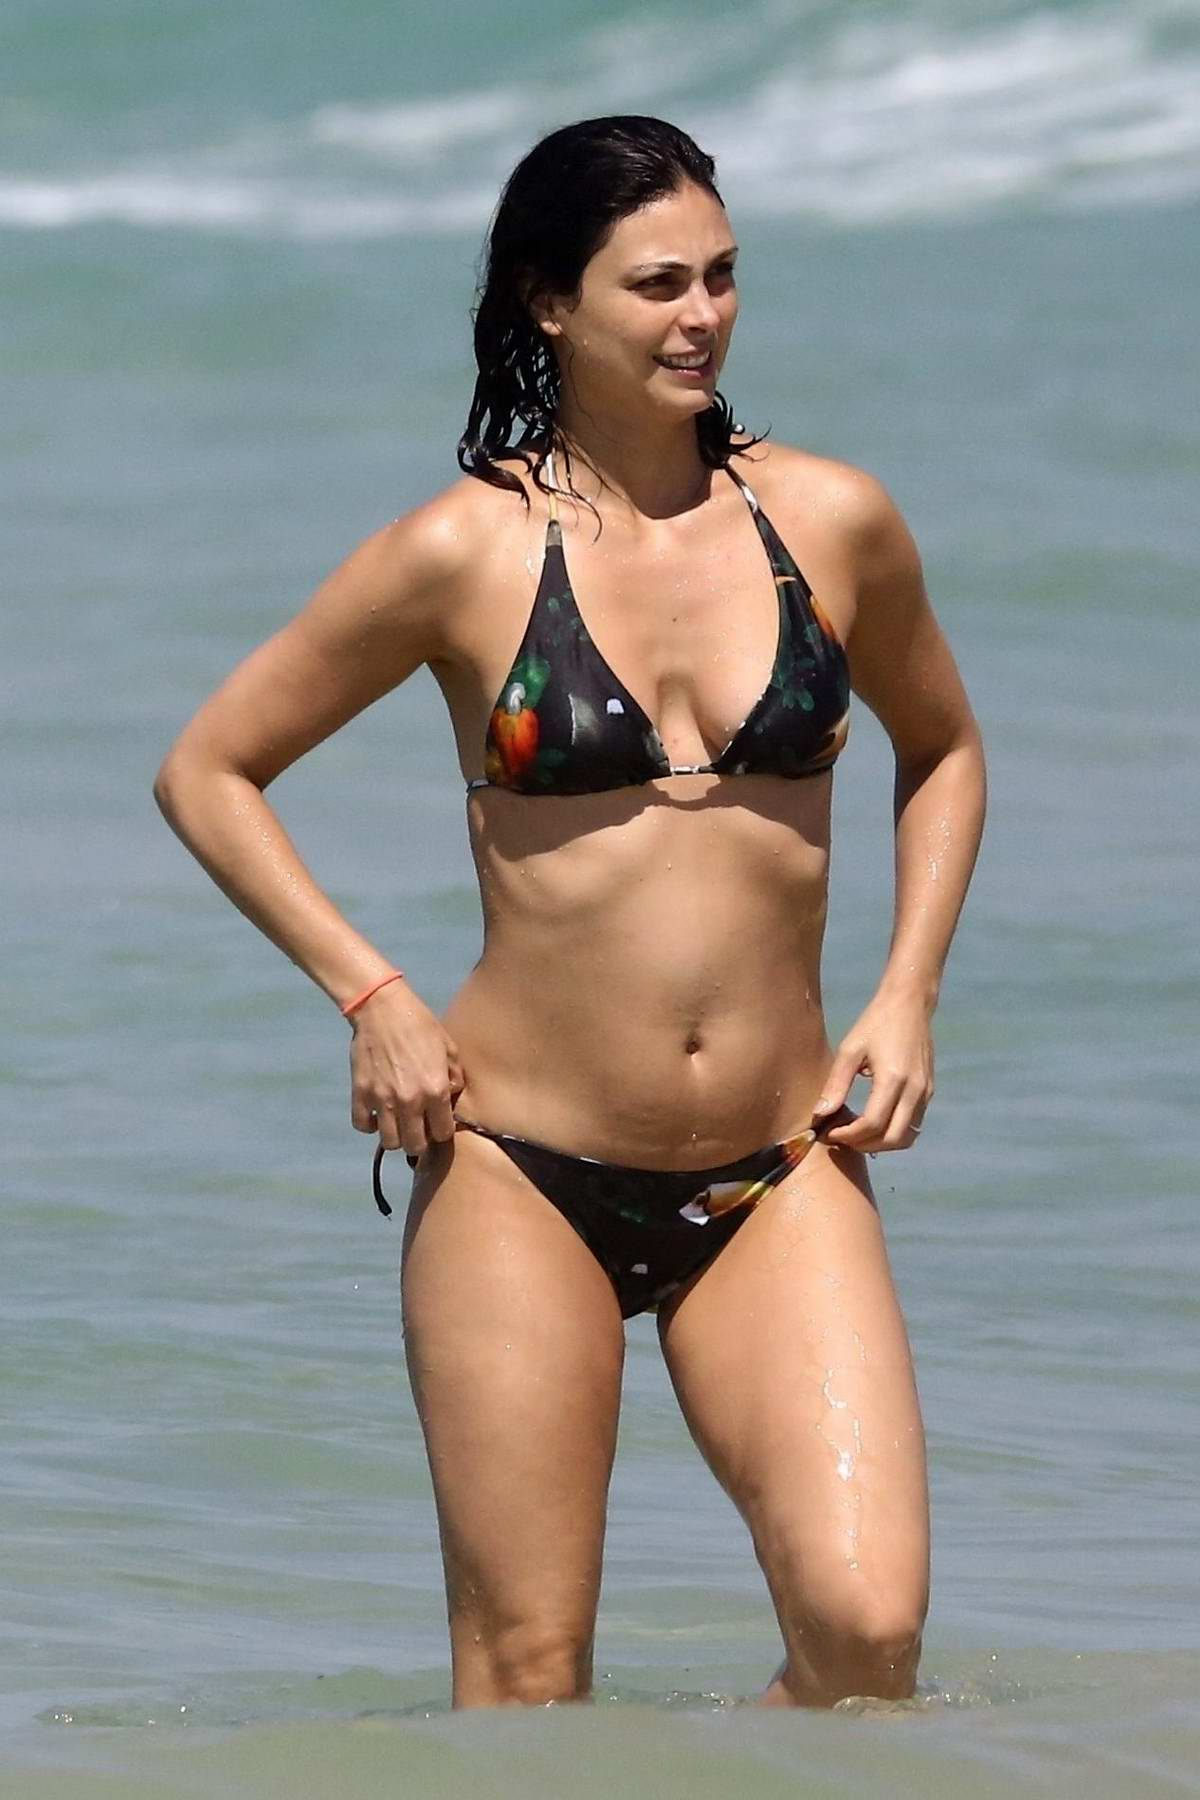 Morena Baccarin Spotted In A Bikini While Enjoying A Beach Day